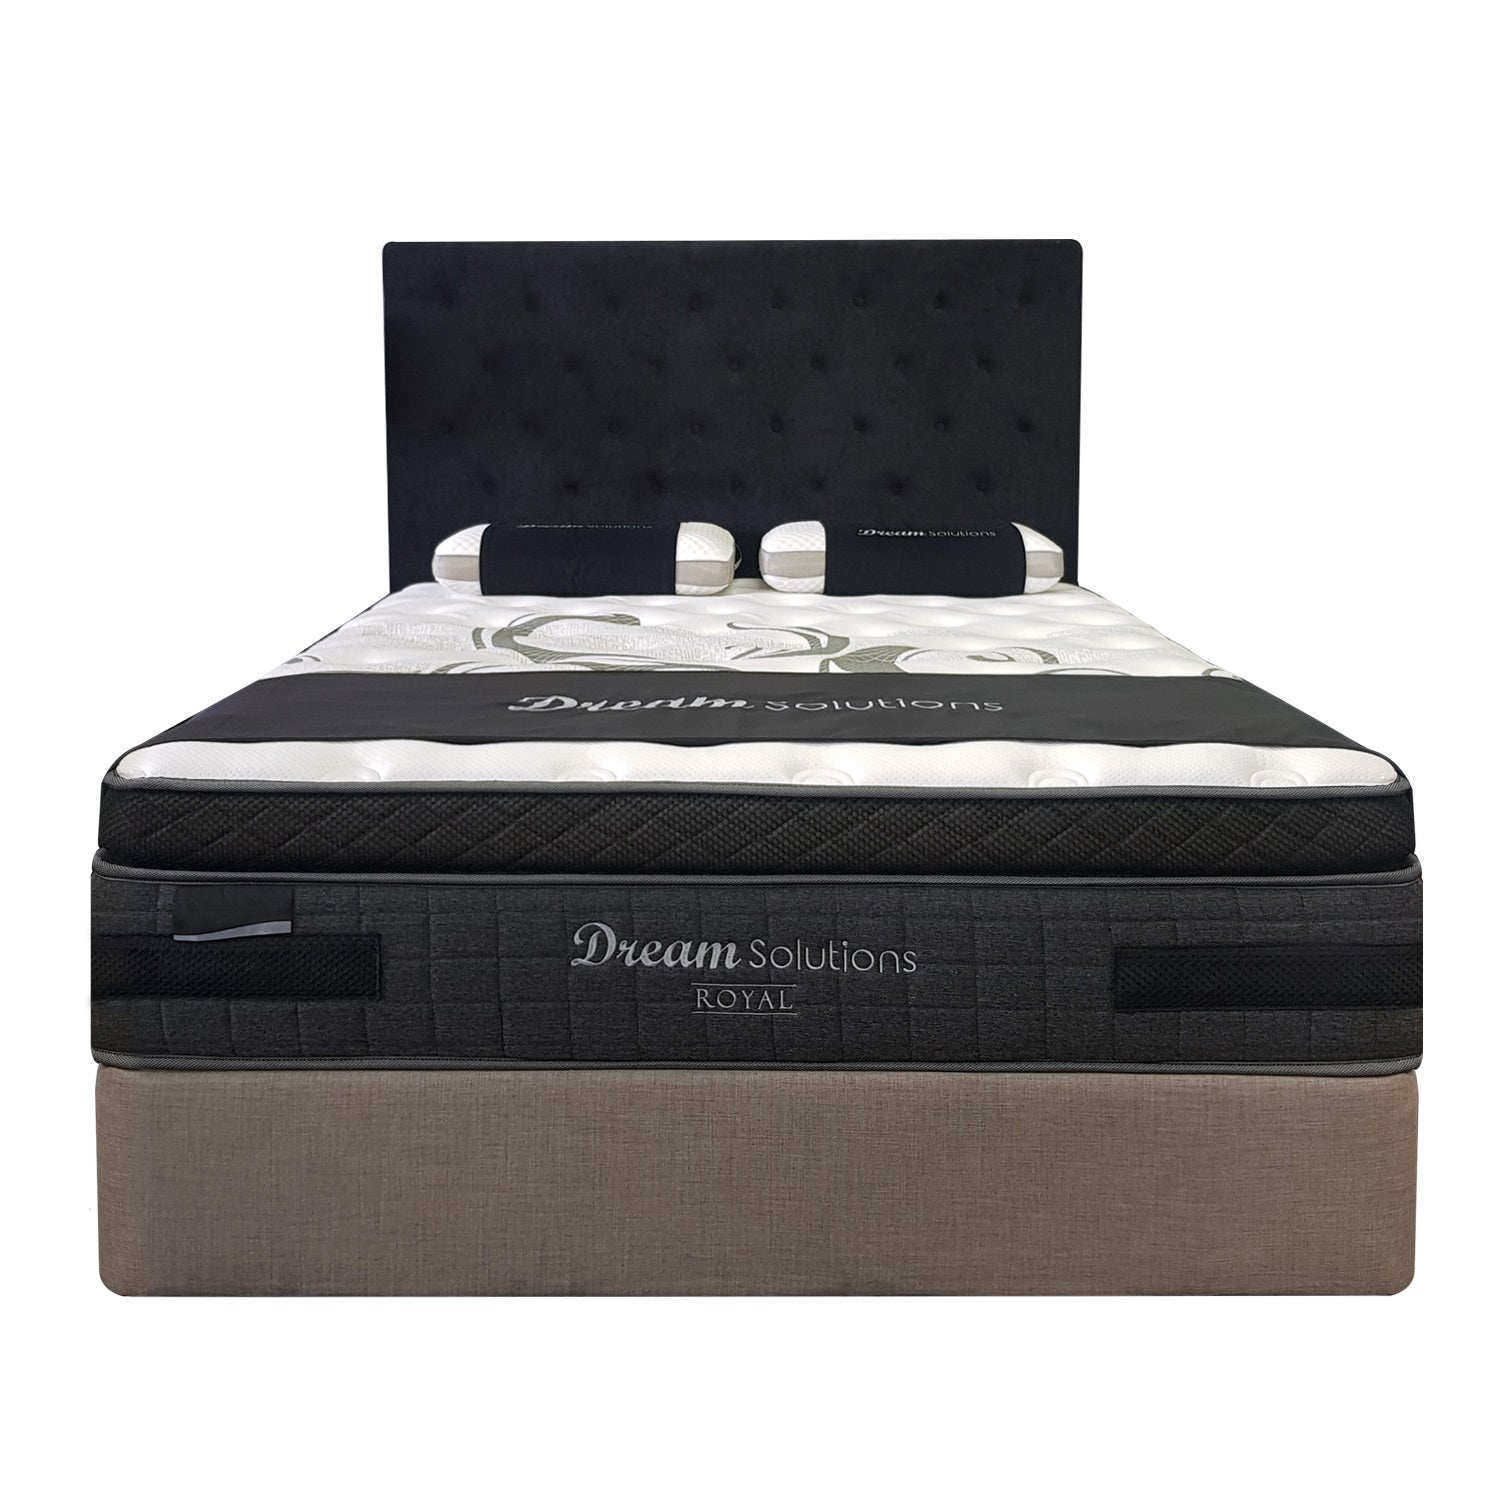 Royal Plush Mattress - The Furniture Store & The Bed Shop